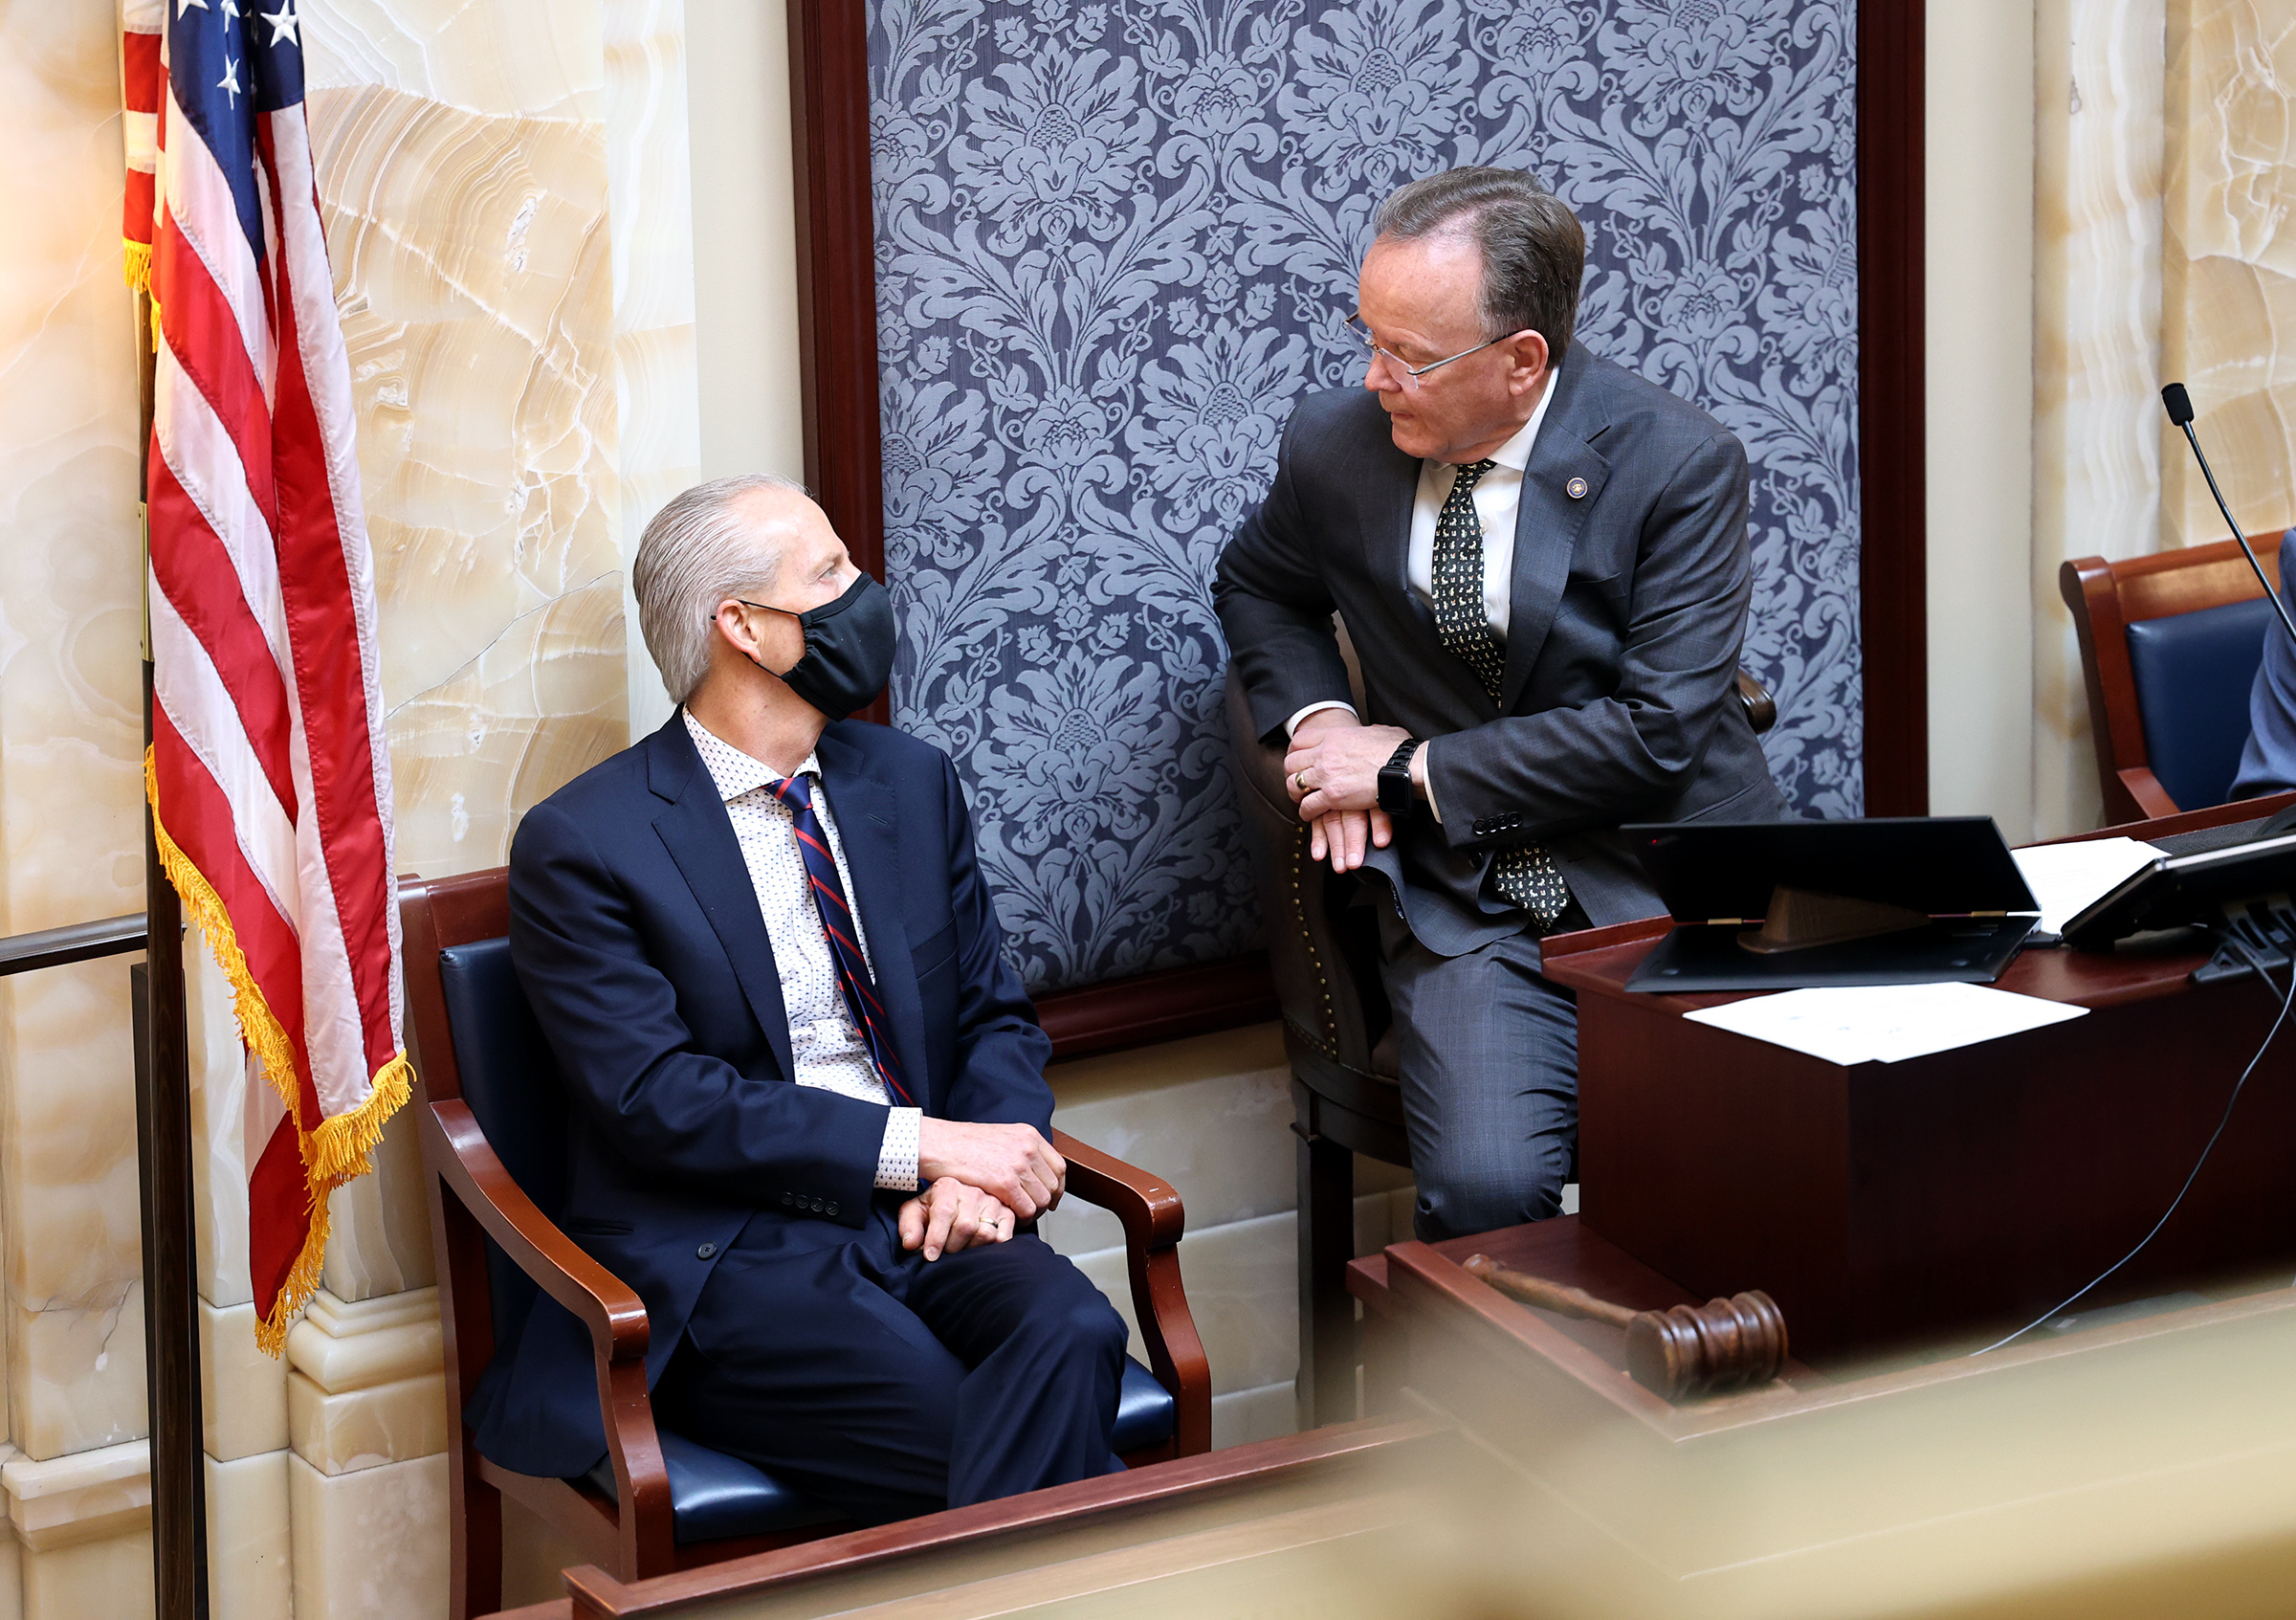 Former Senate President Wayne Niederhauser, left, talks with current Senate President Stuart Adams, R-Layton, during floor time at the Capitol in Salt Lake City on Tuesday, March 2, 2021, the last week of the 2021 session